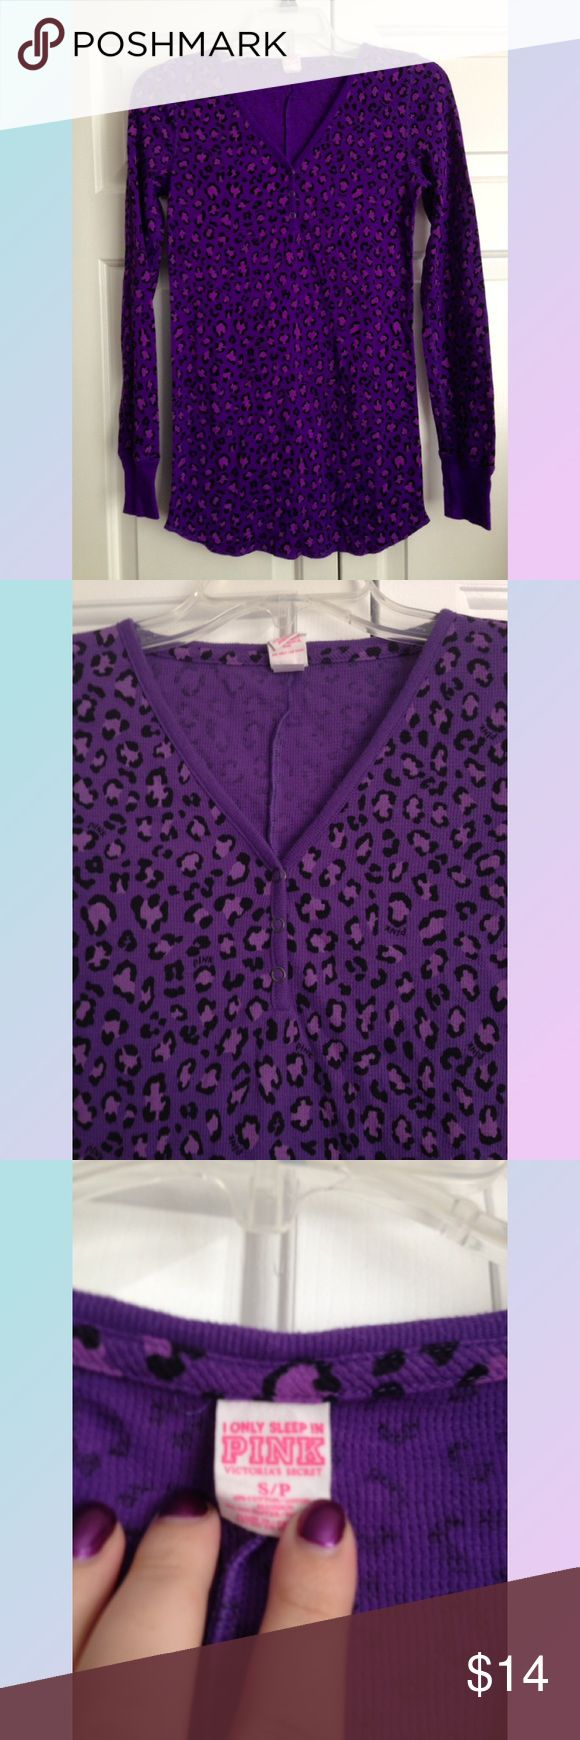 """VS PINK Violet Cheetah Print Thermal Henley Top Excellent used condition, some extremely light pilling on the cuffs. Smoke and pet free home. From the """"I Only Sleep In PINK"""" line. :) No trades, please! PINK Victoria's Secret Tops Tees - Long Sleeve"""